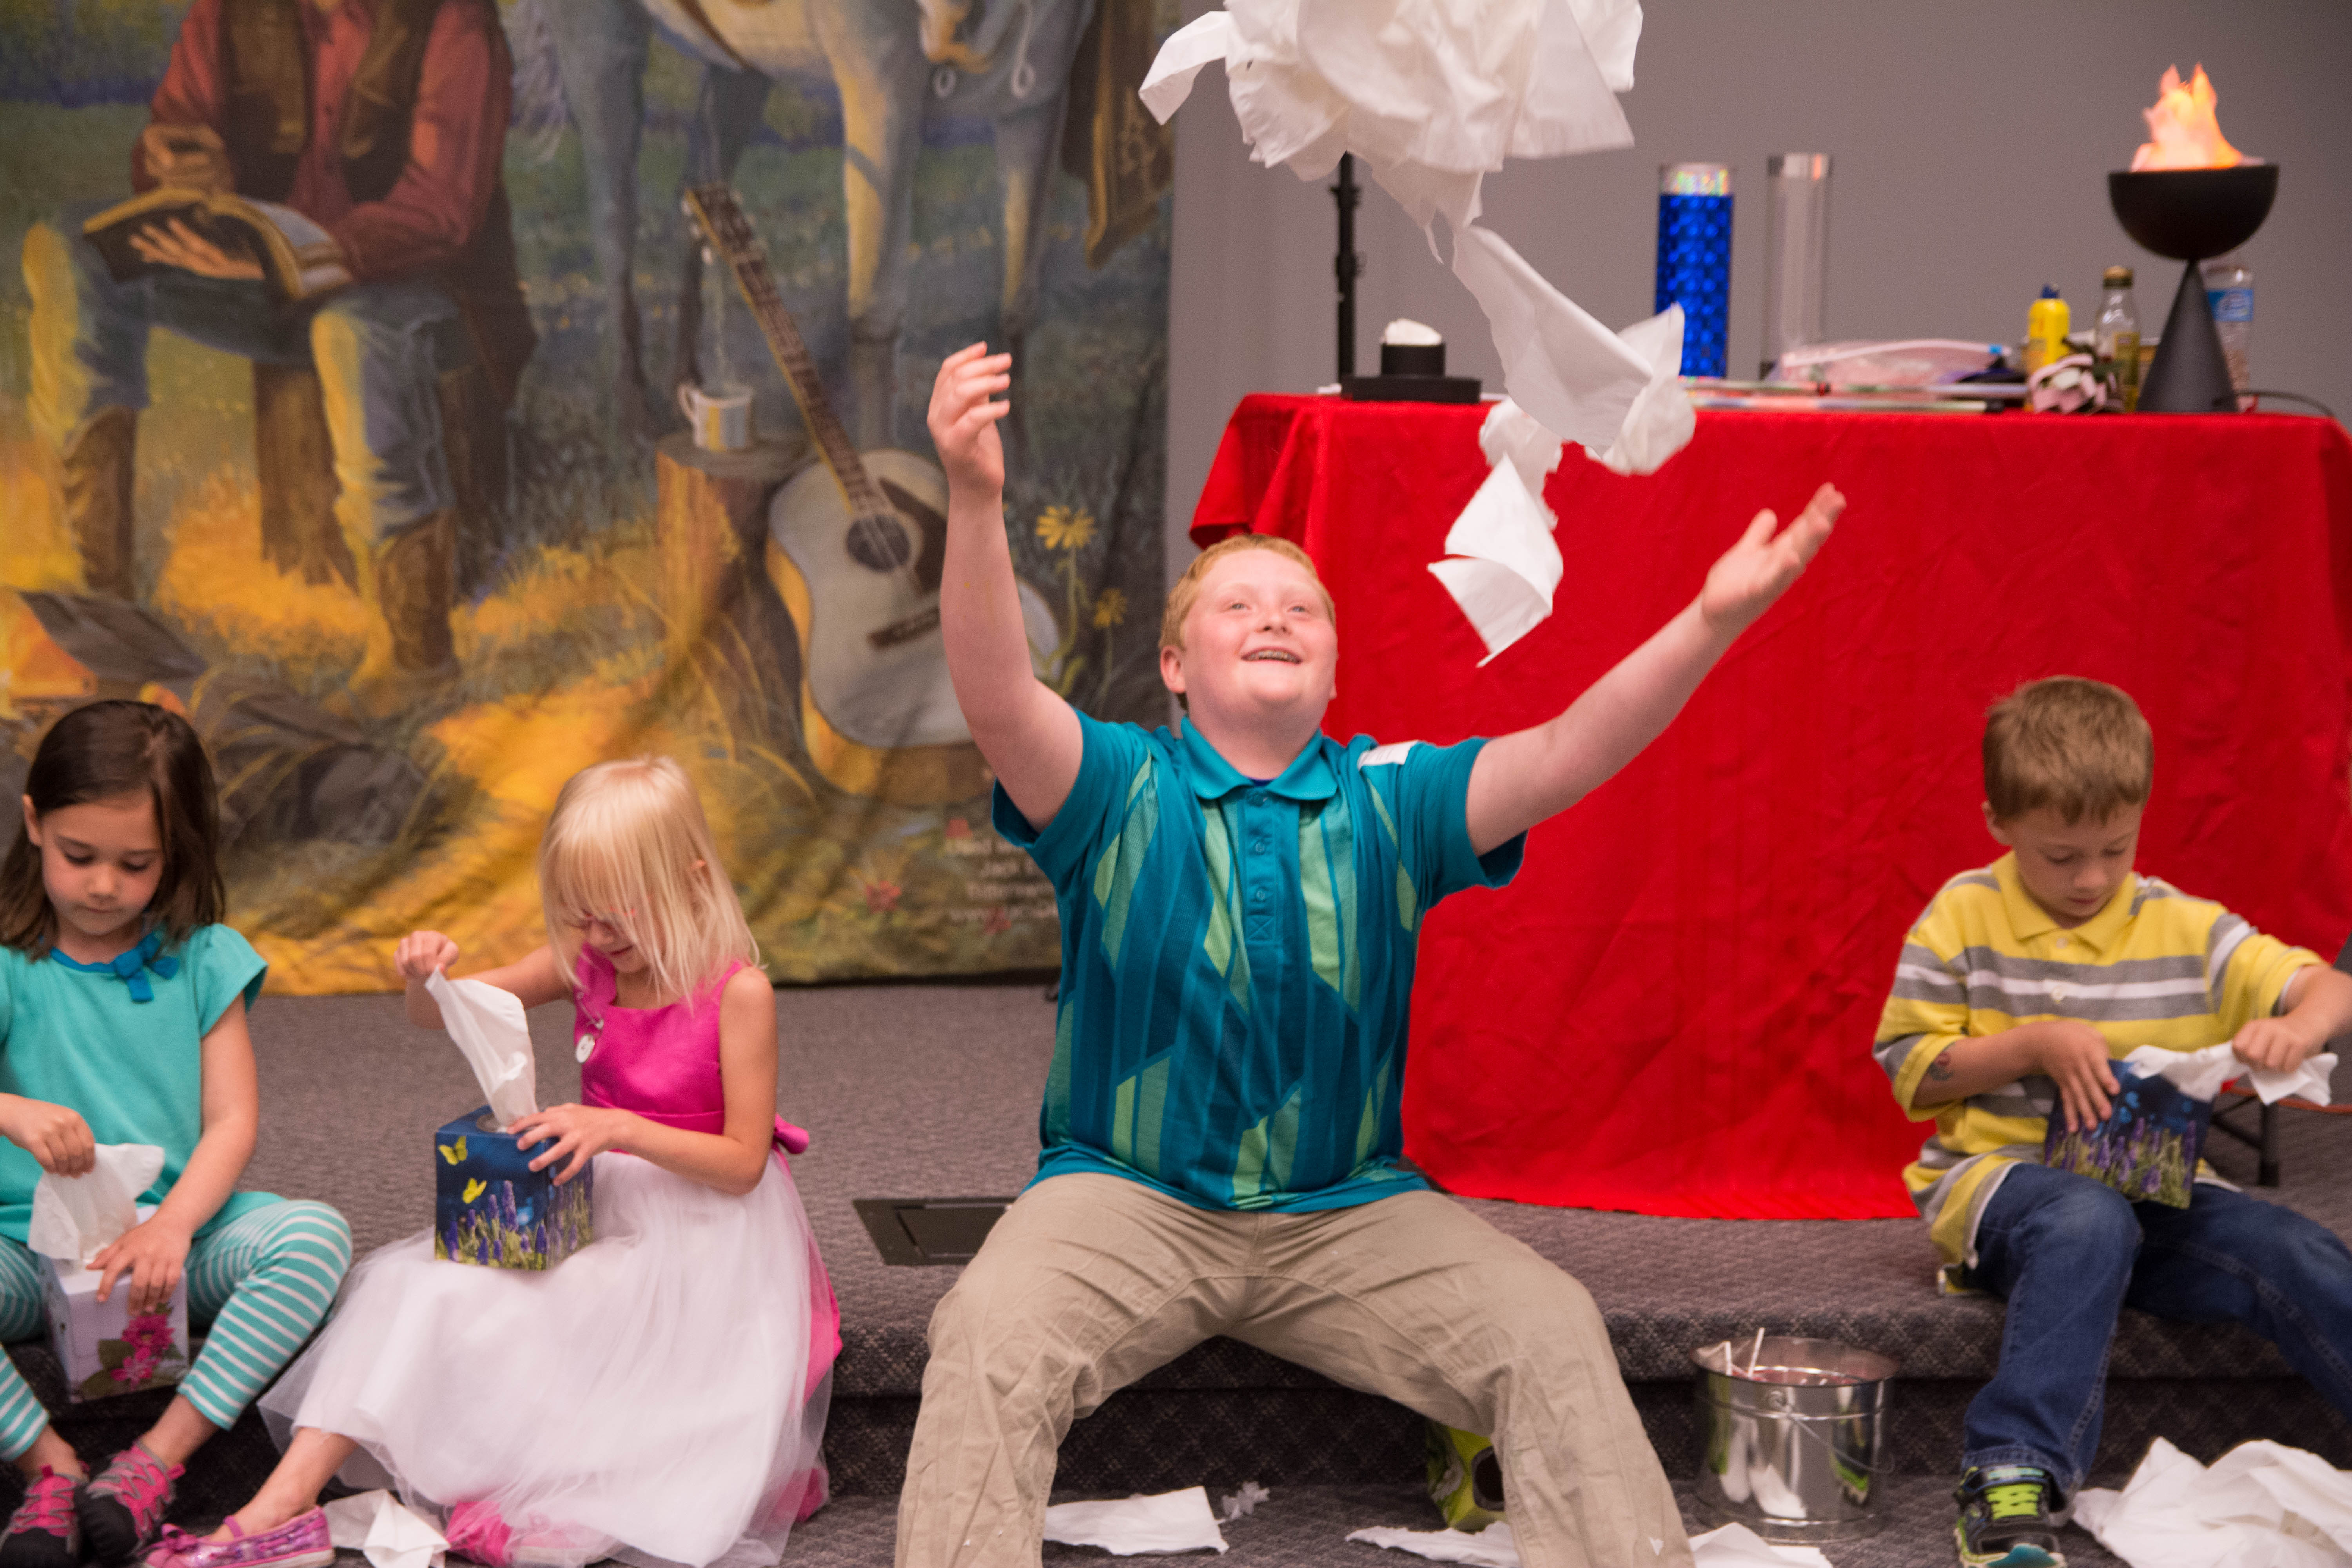 Children's Revivals and Crusades   Revival Fire For Kids